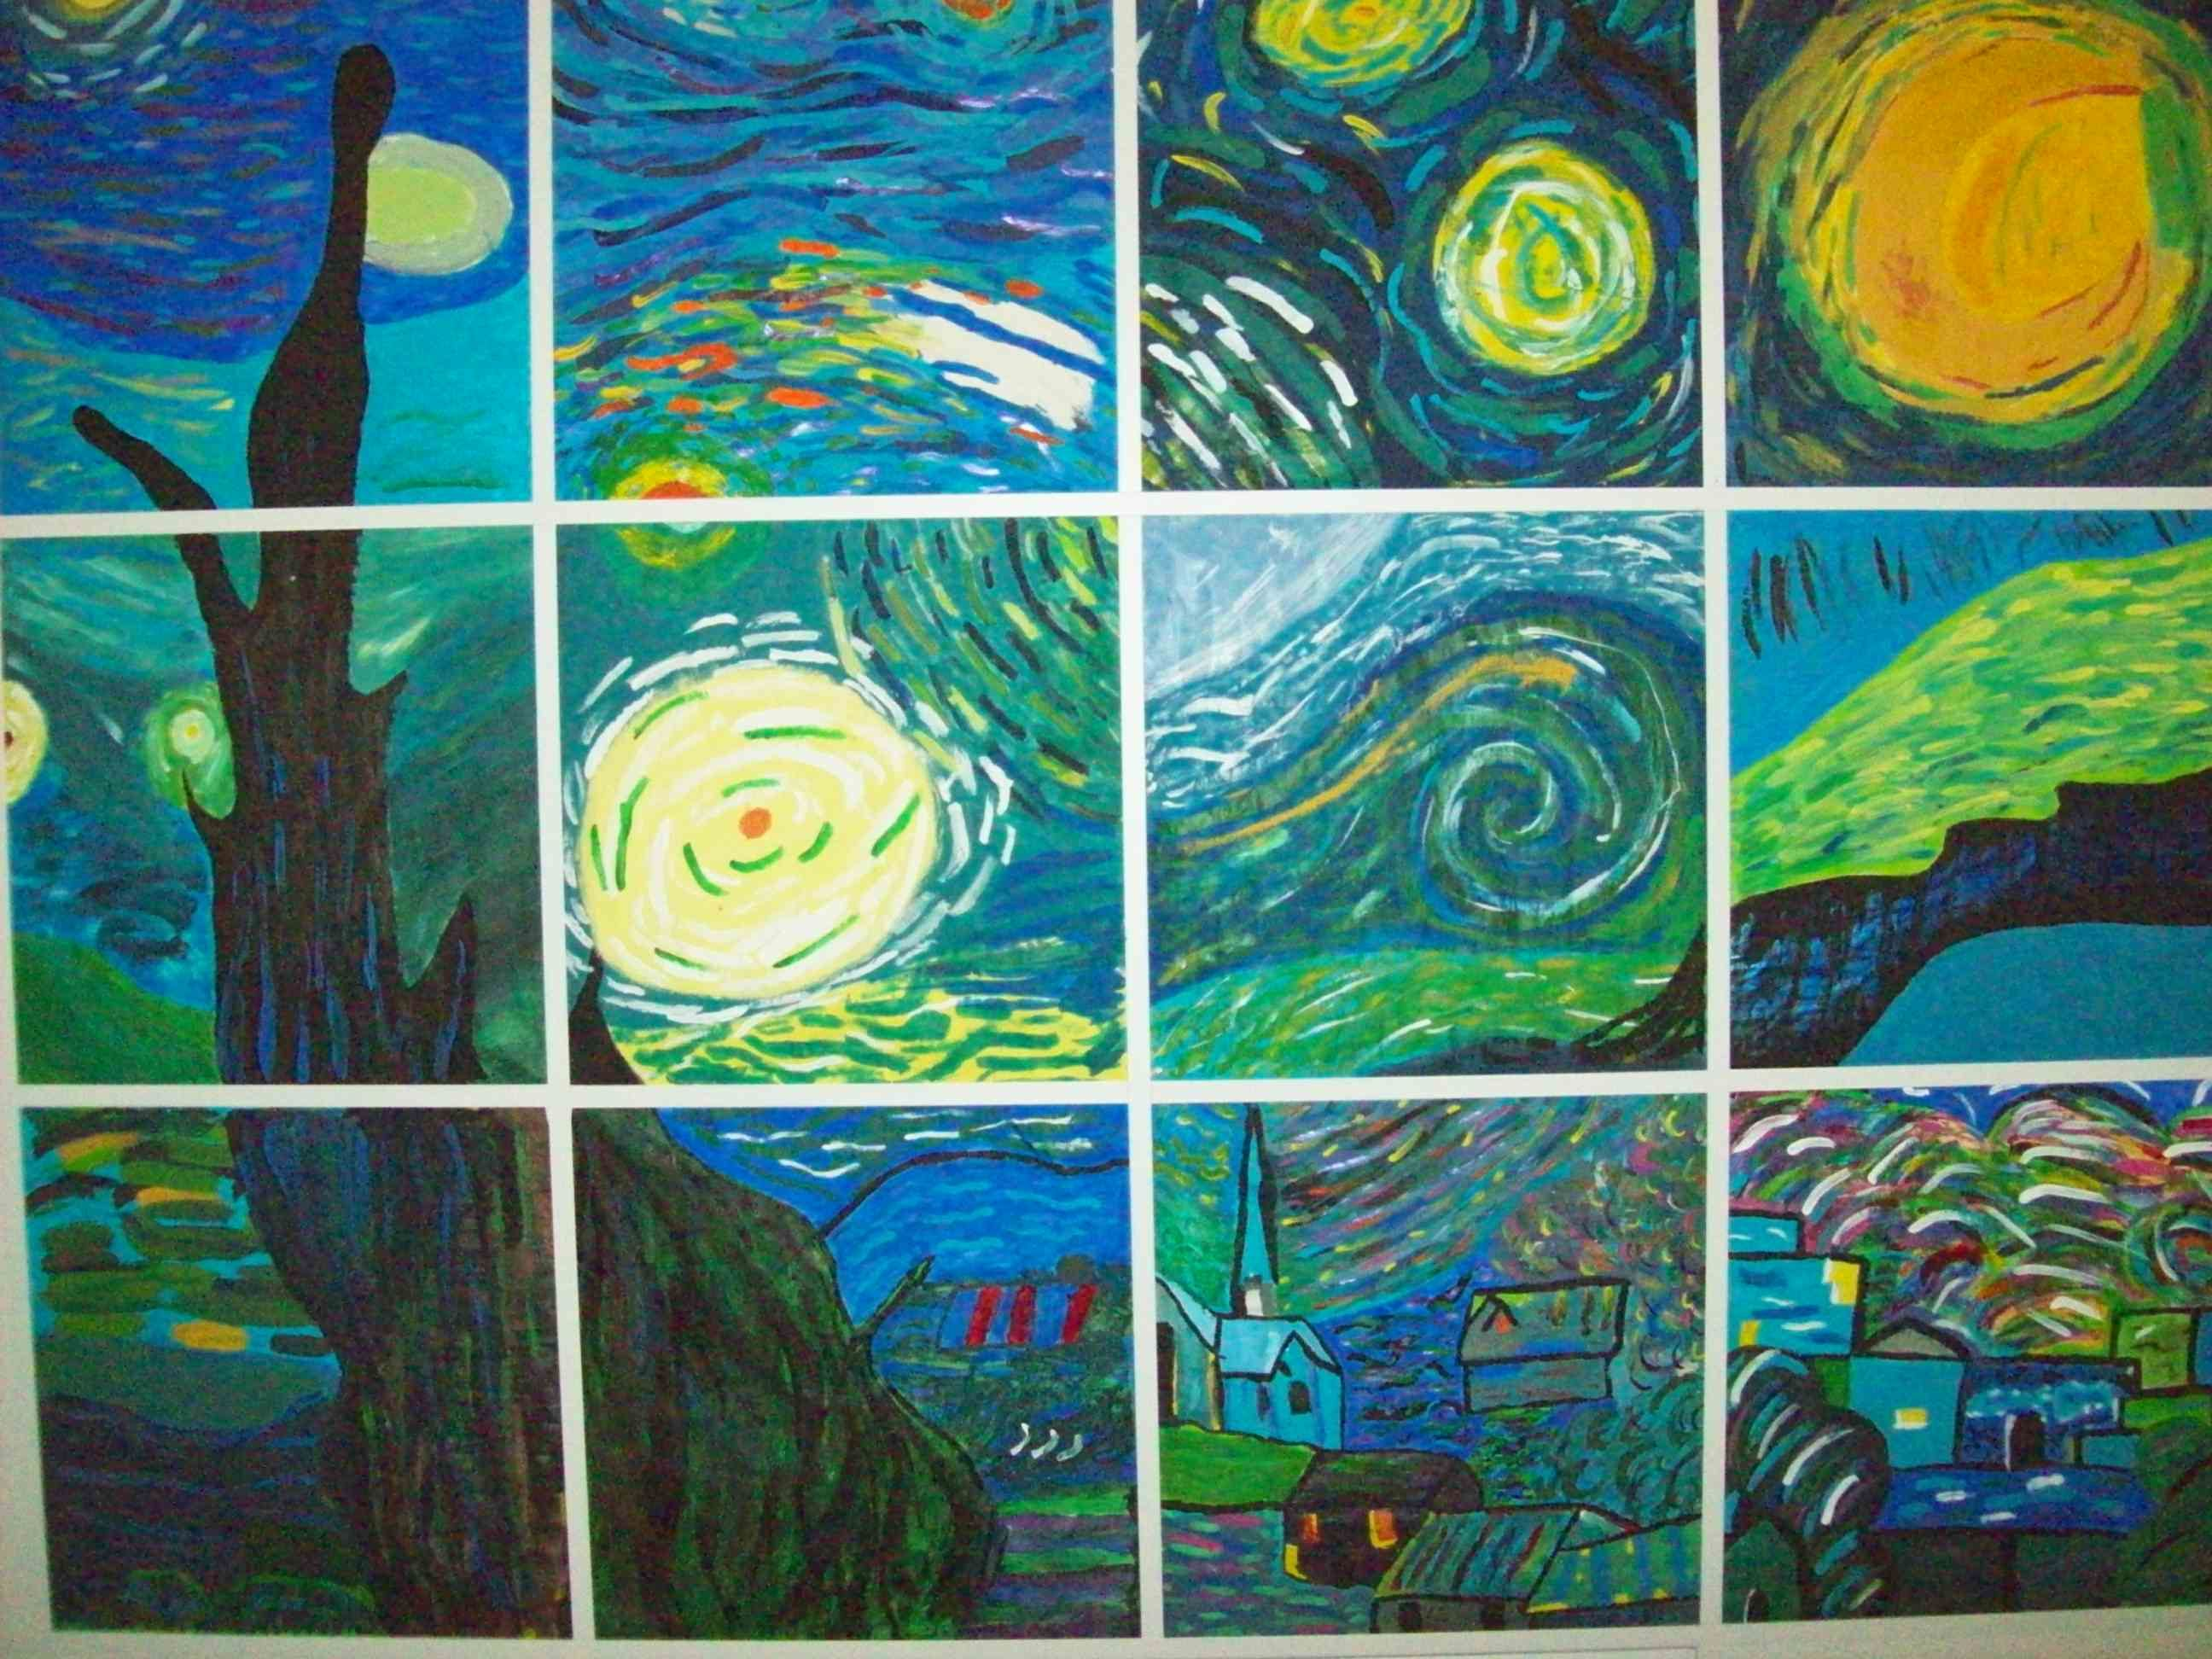 van gogh essay You have not saved any essays starry night vincent van gogh's starry night is a marvelous painting in which van gogh paints a picture that is colorful and descriptive this painting can be described as mysterious and intriguing it can signify a variety of moods, objects, and atmosphere van gogh.